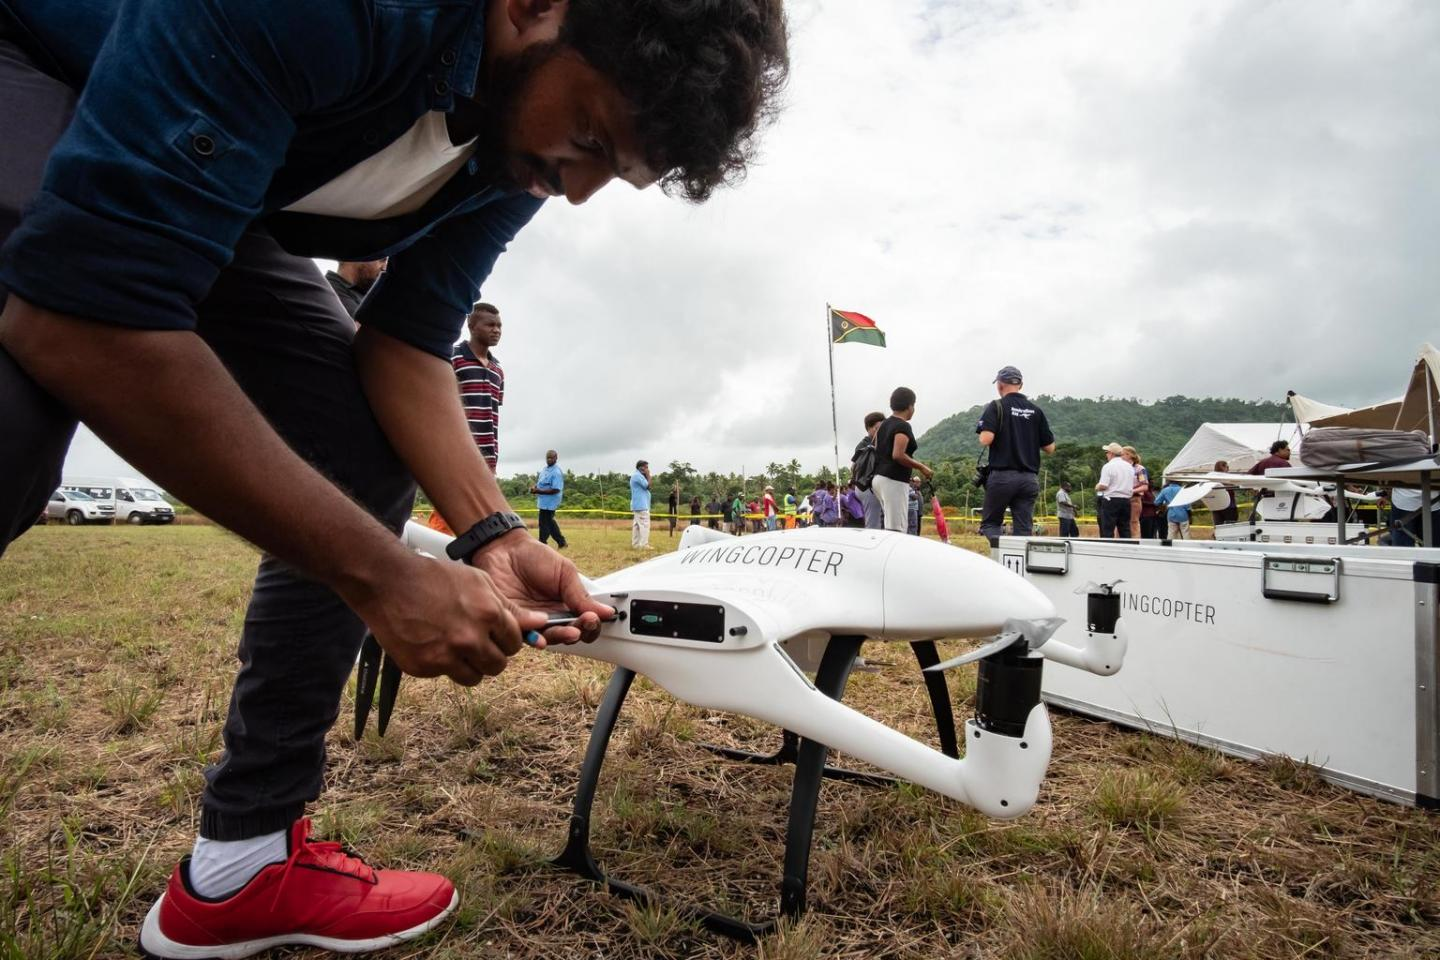 Wingcopter technician of Germany assembling drone at the launch of the Vanuatu Drone trials for vaccine delivery event on Efate island, Vanuatu.